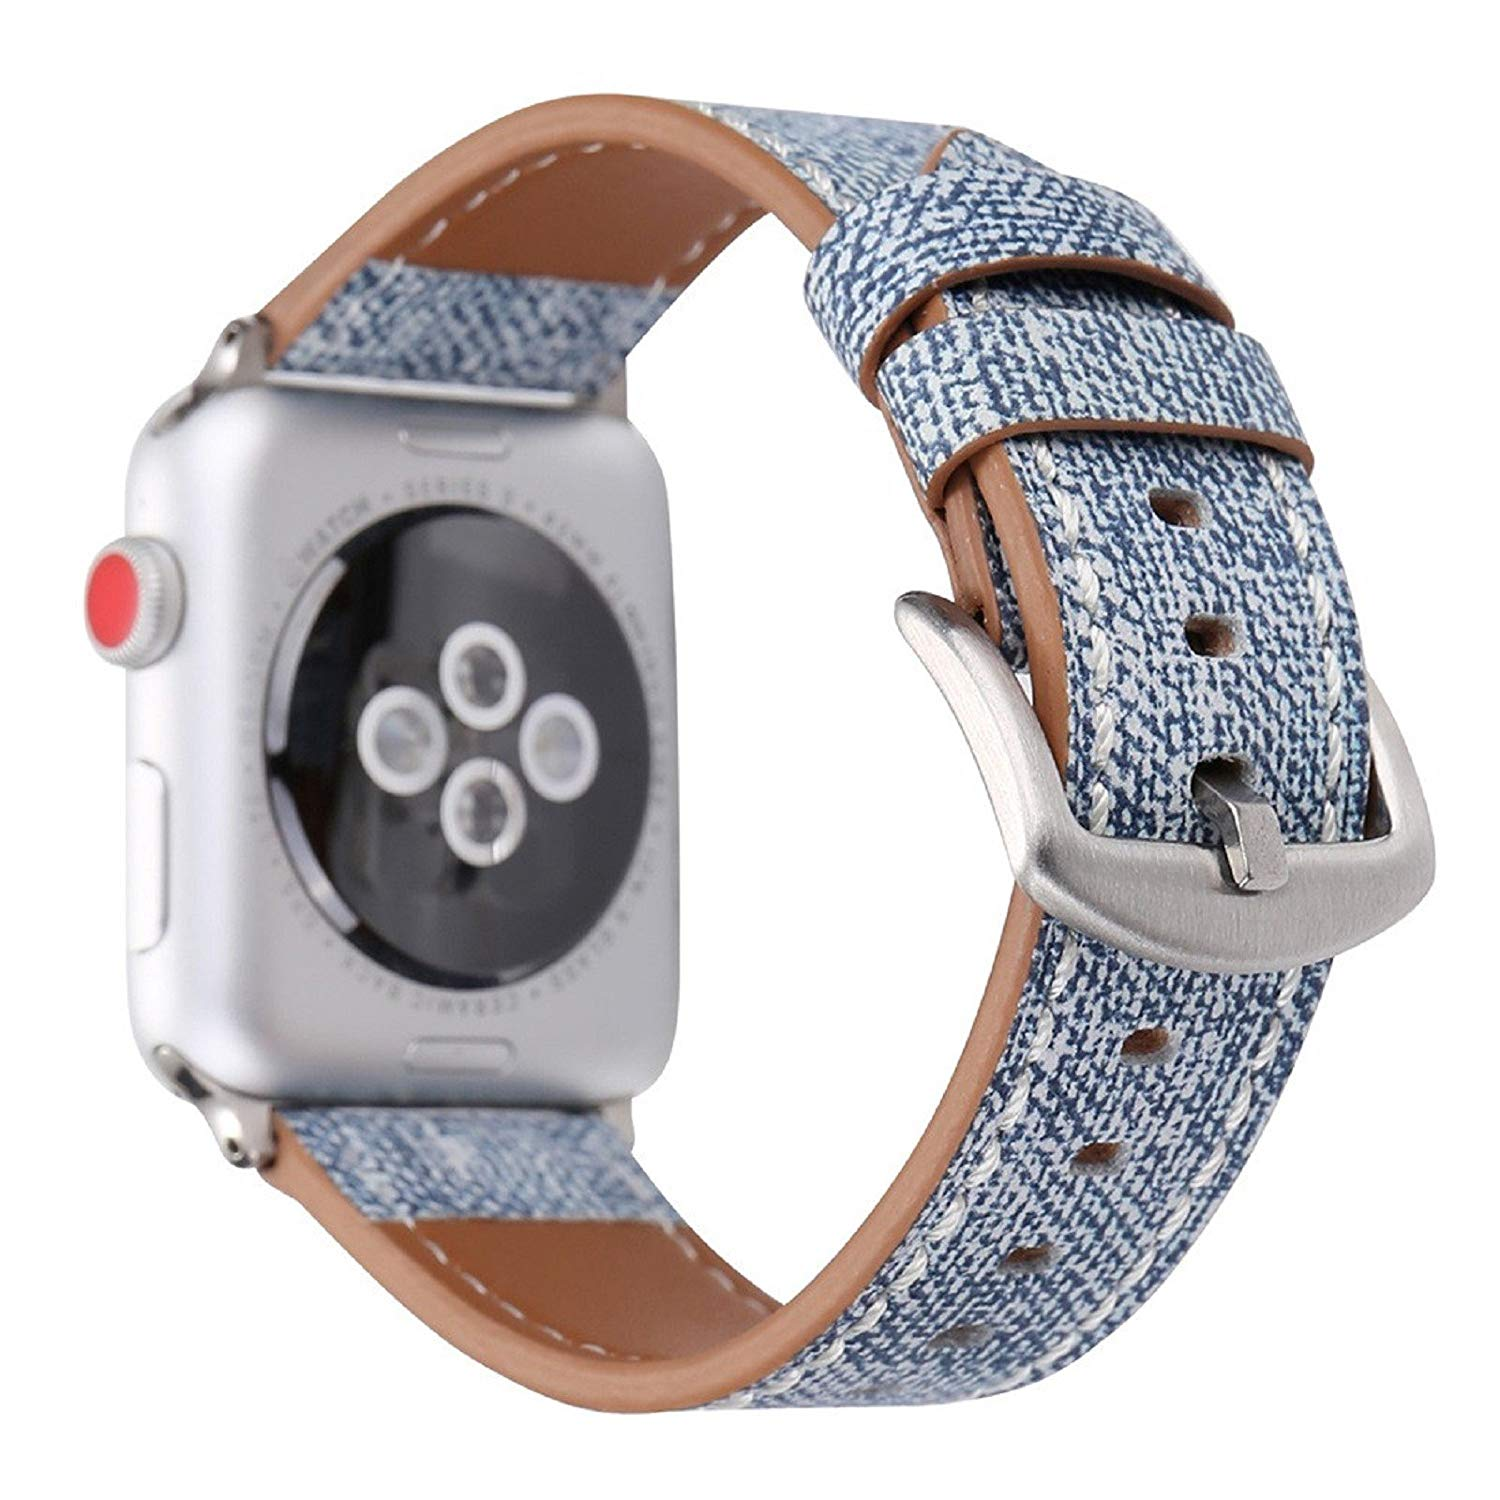 Owill Durable Cowboy Pattern Leather Strap Replacement Watch Band For Apple Watch 42MM, Suitable Wrist 160-225MM (Light Blue)